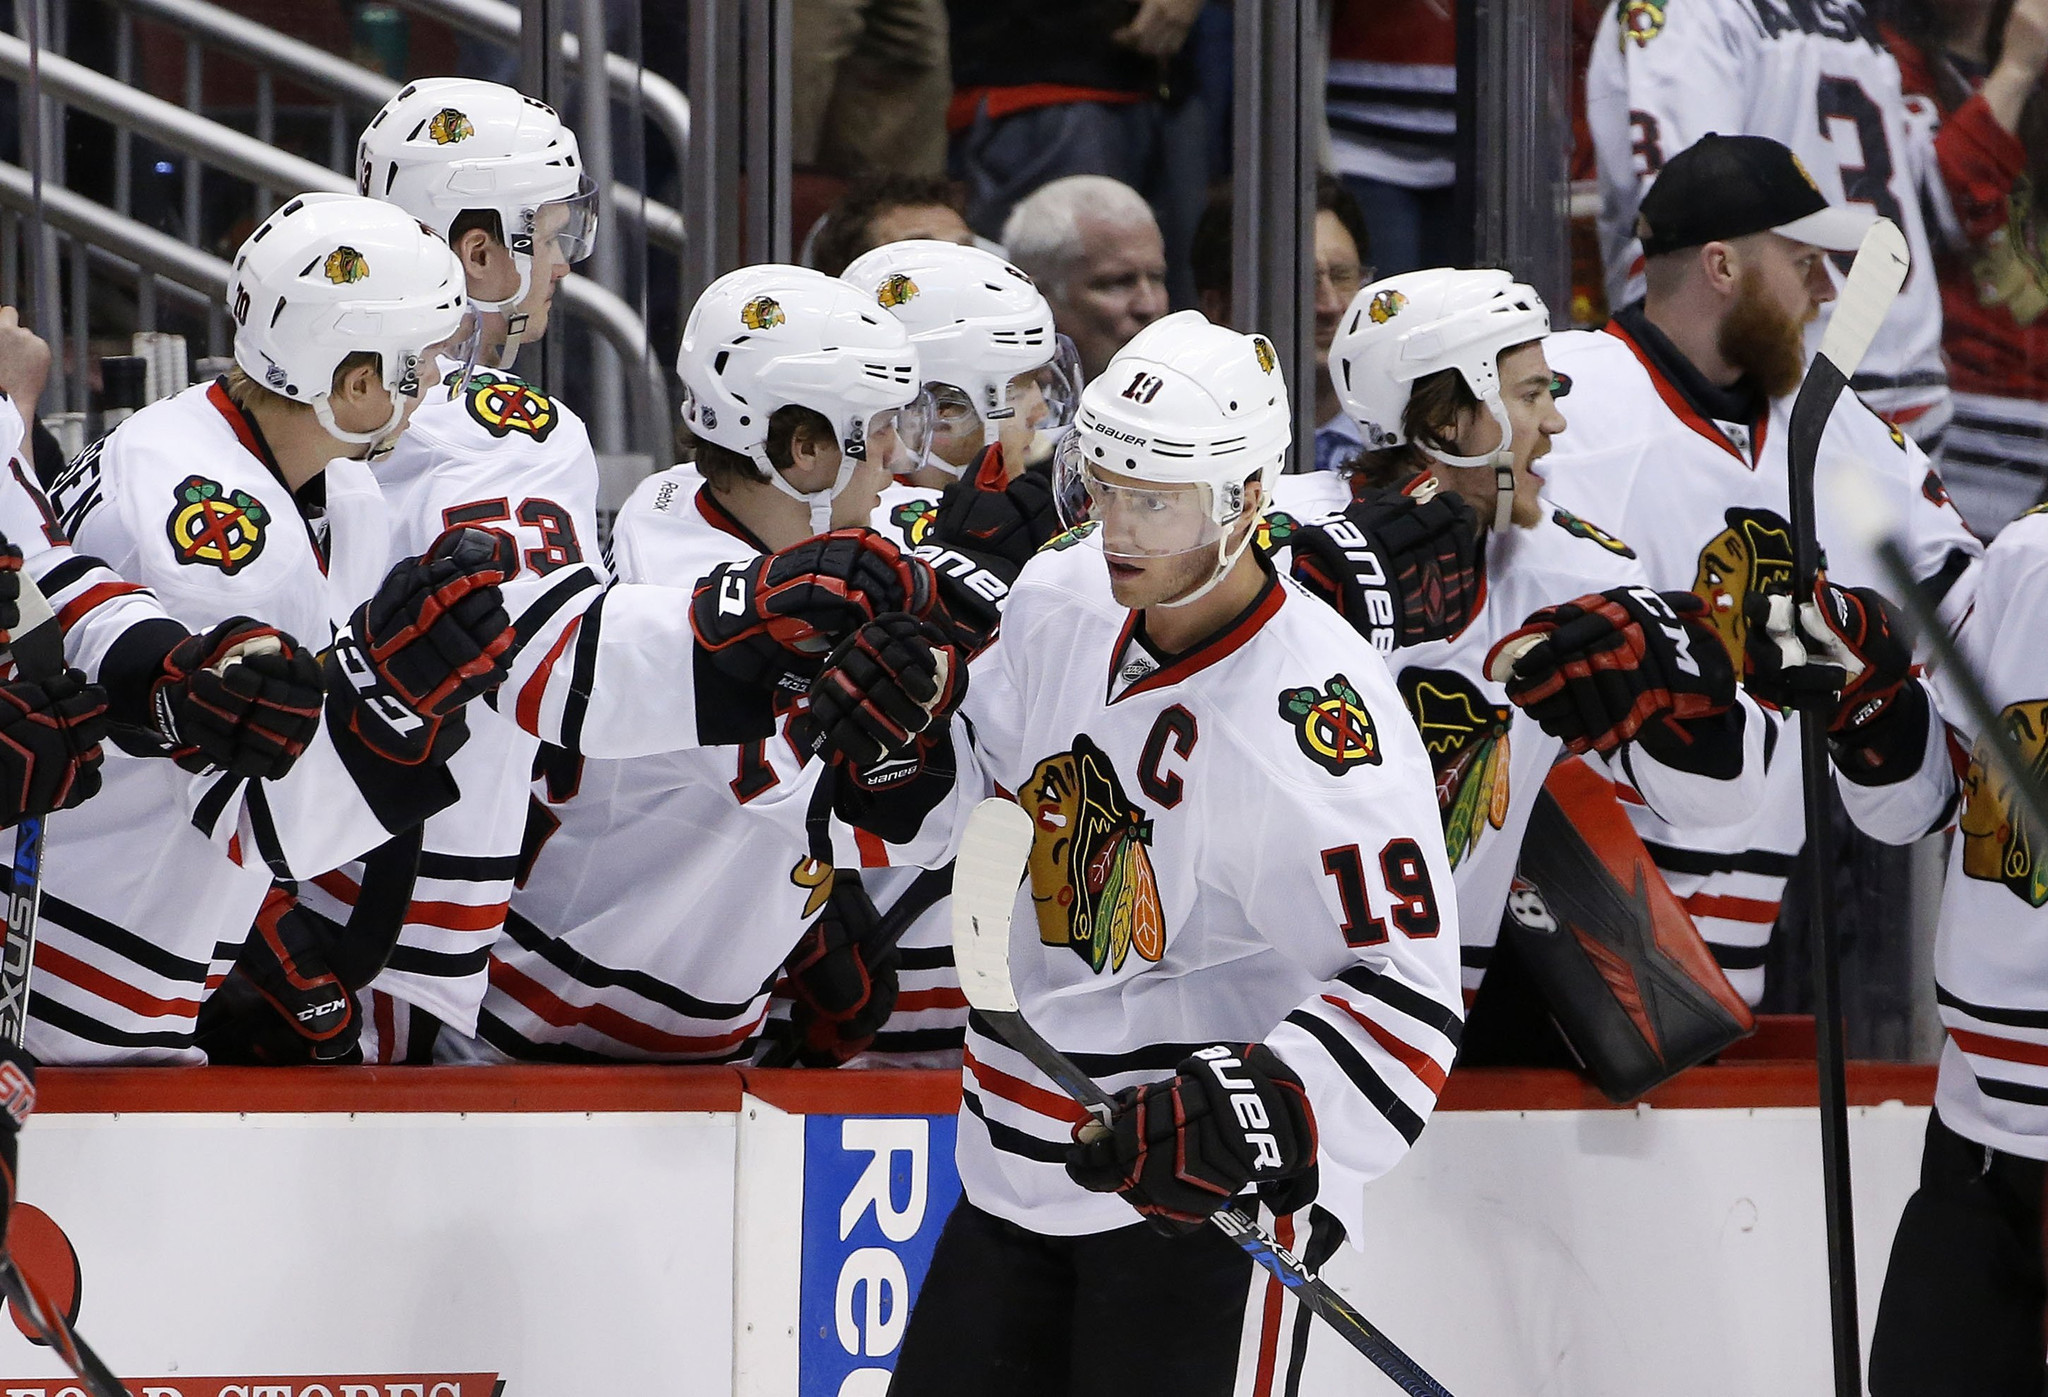 Ct-blackhawks-vs-coyotes-photos-spt-20160204